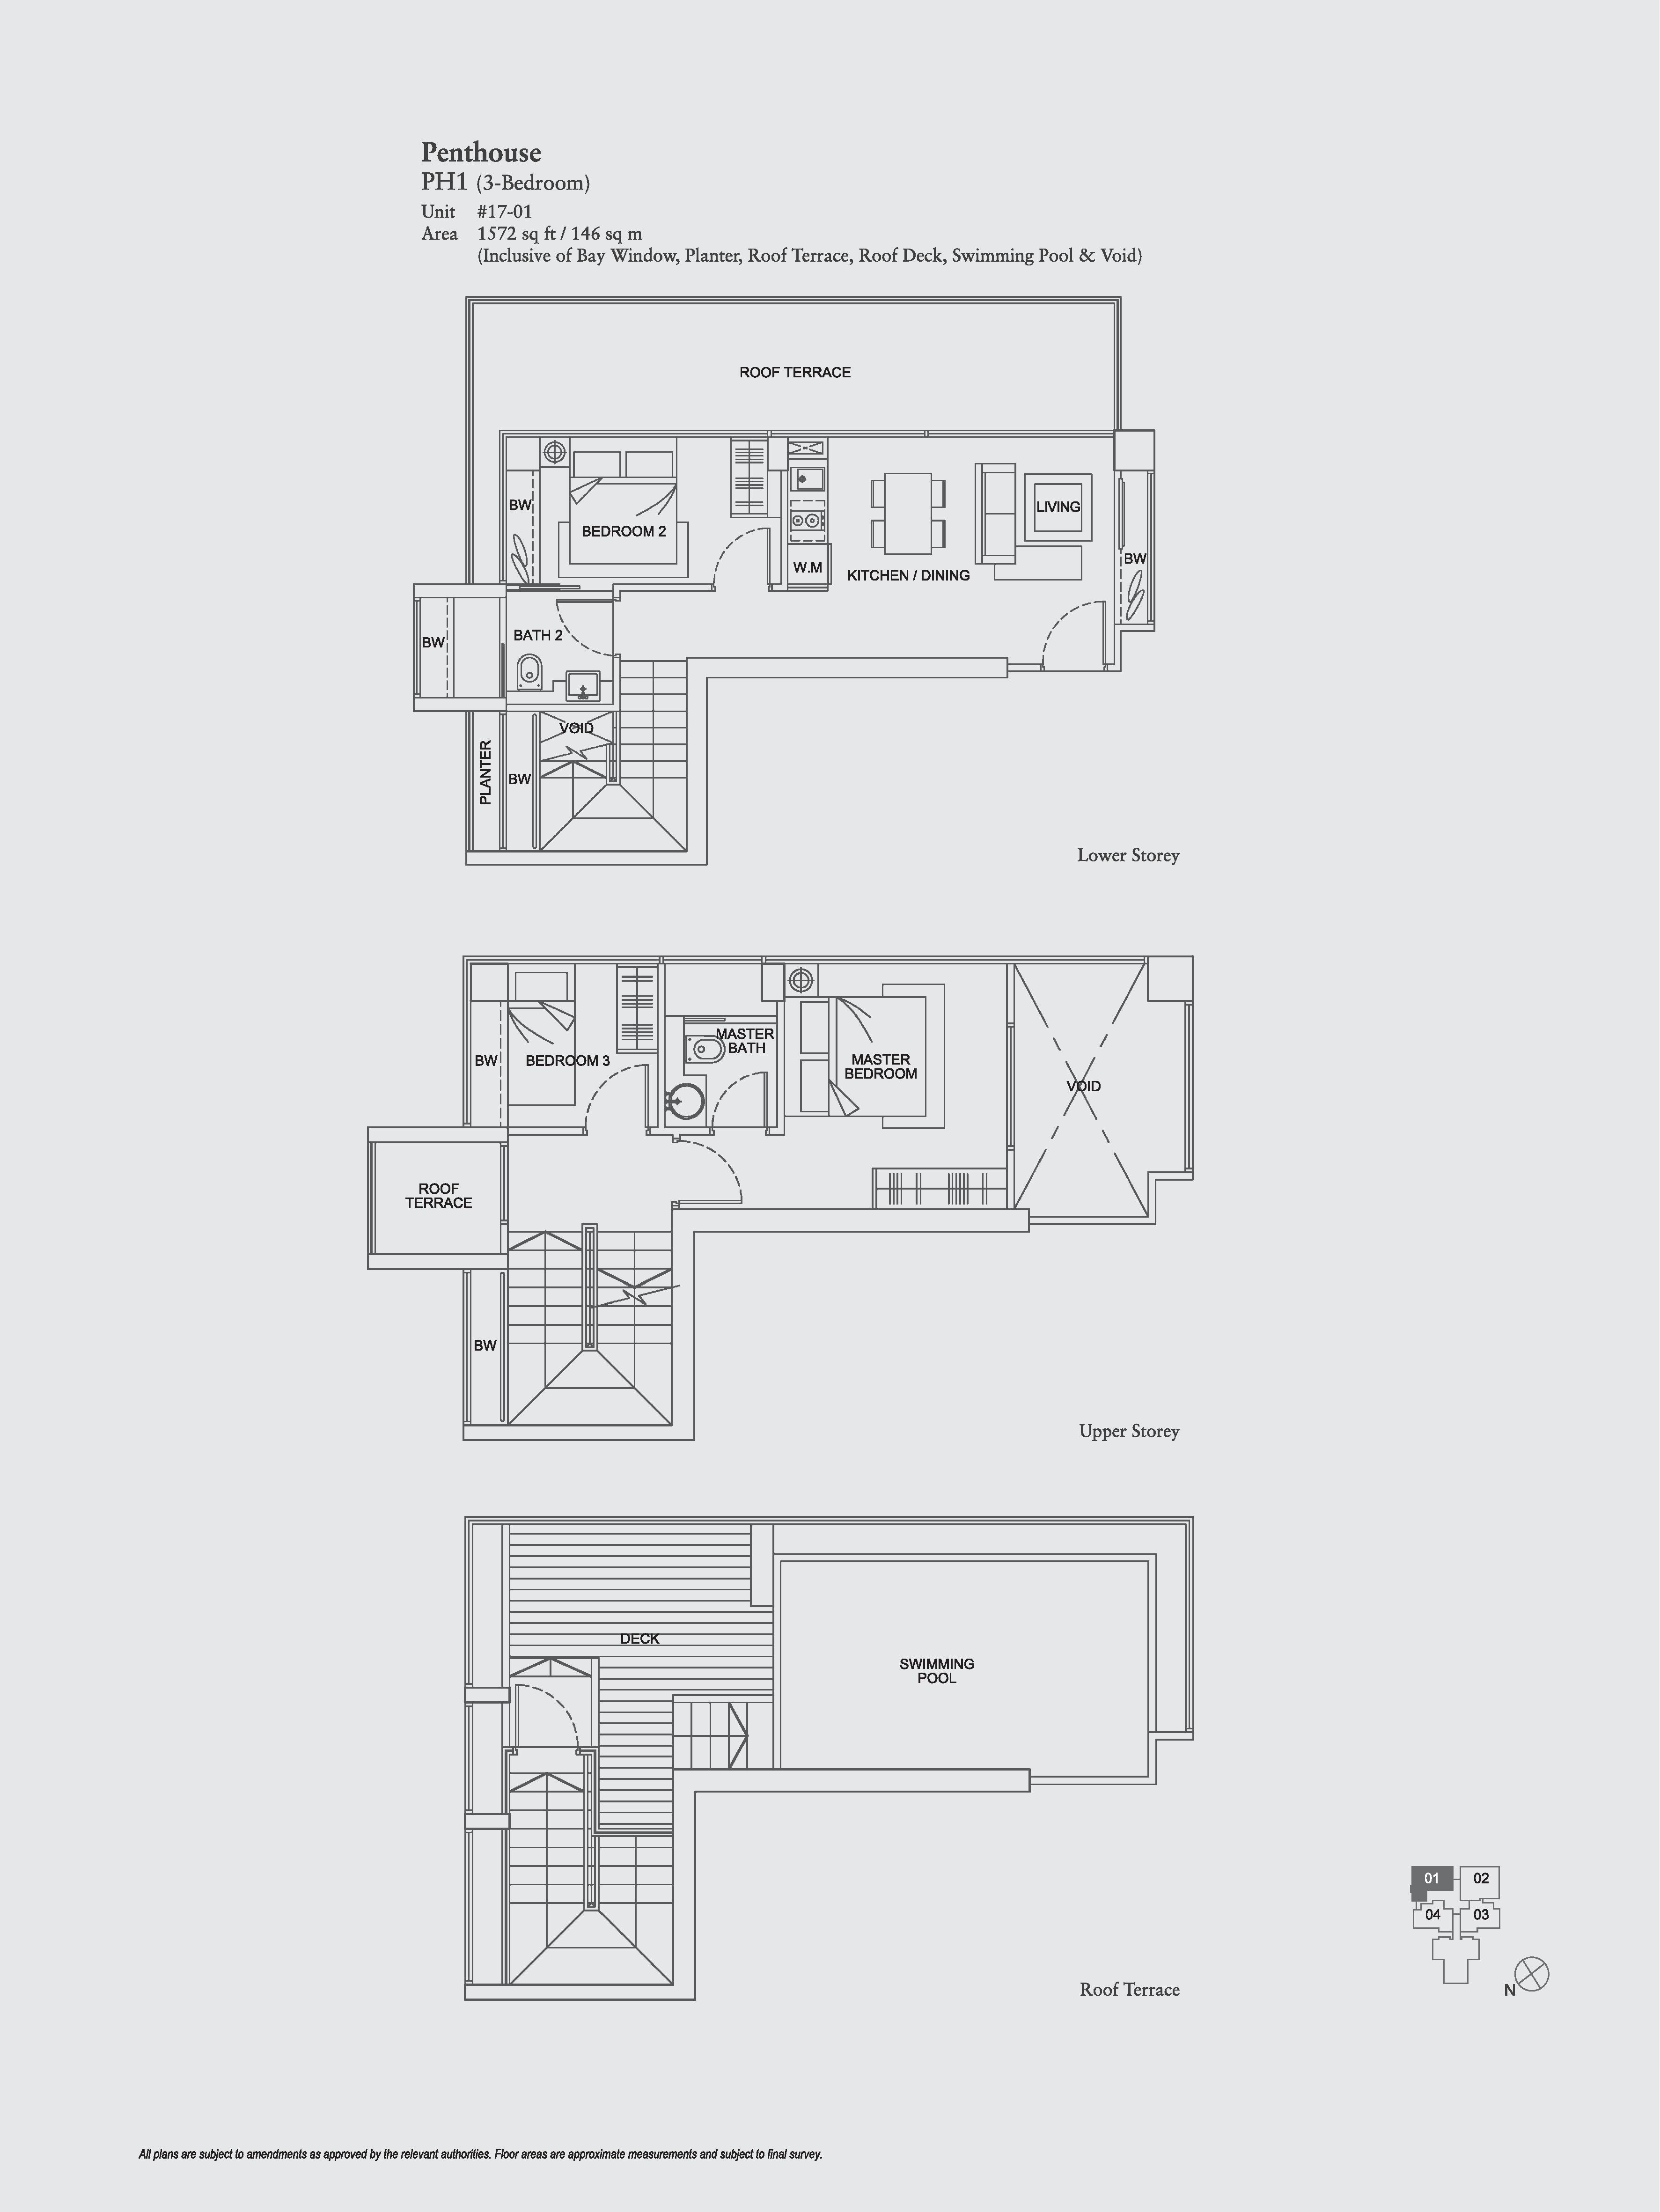 The Aristo 3 Bedroom Floor Plans Type PH1